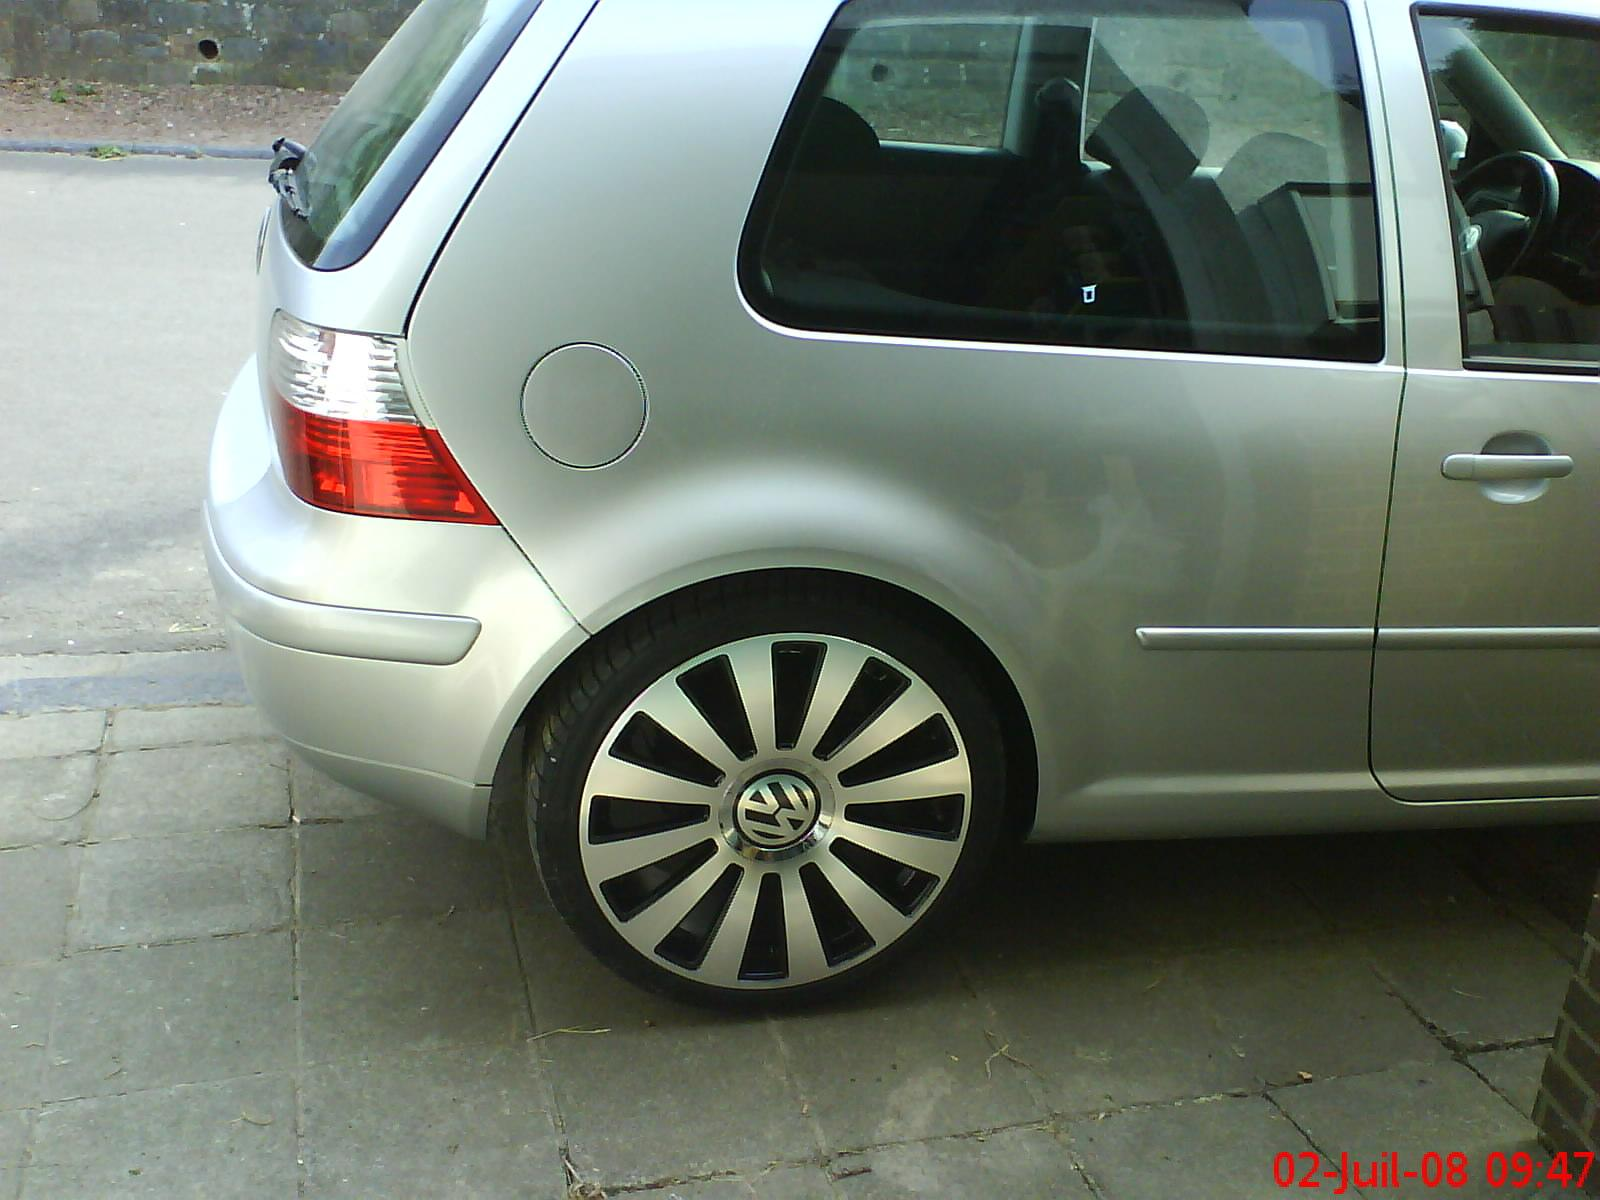 golf iv tdi 110 de tompo   garage des golf iv tdi 110